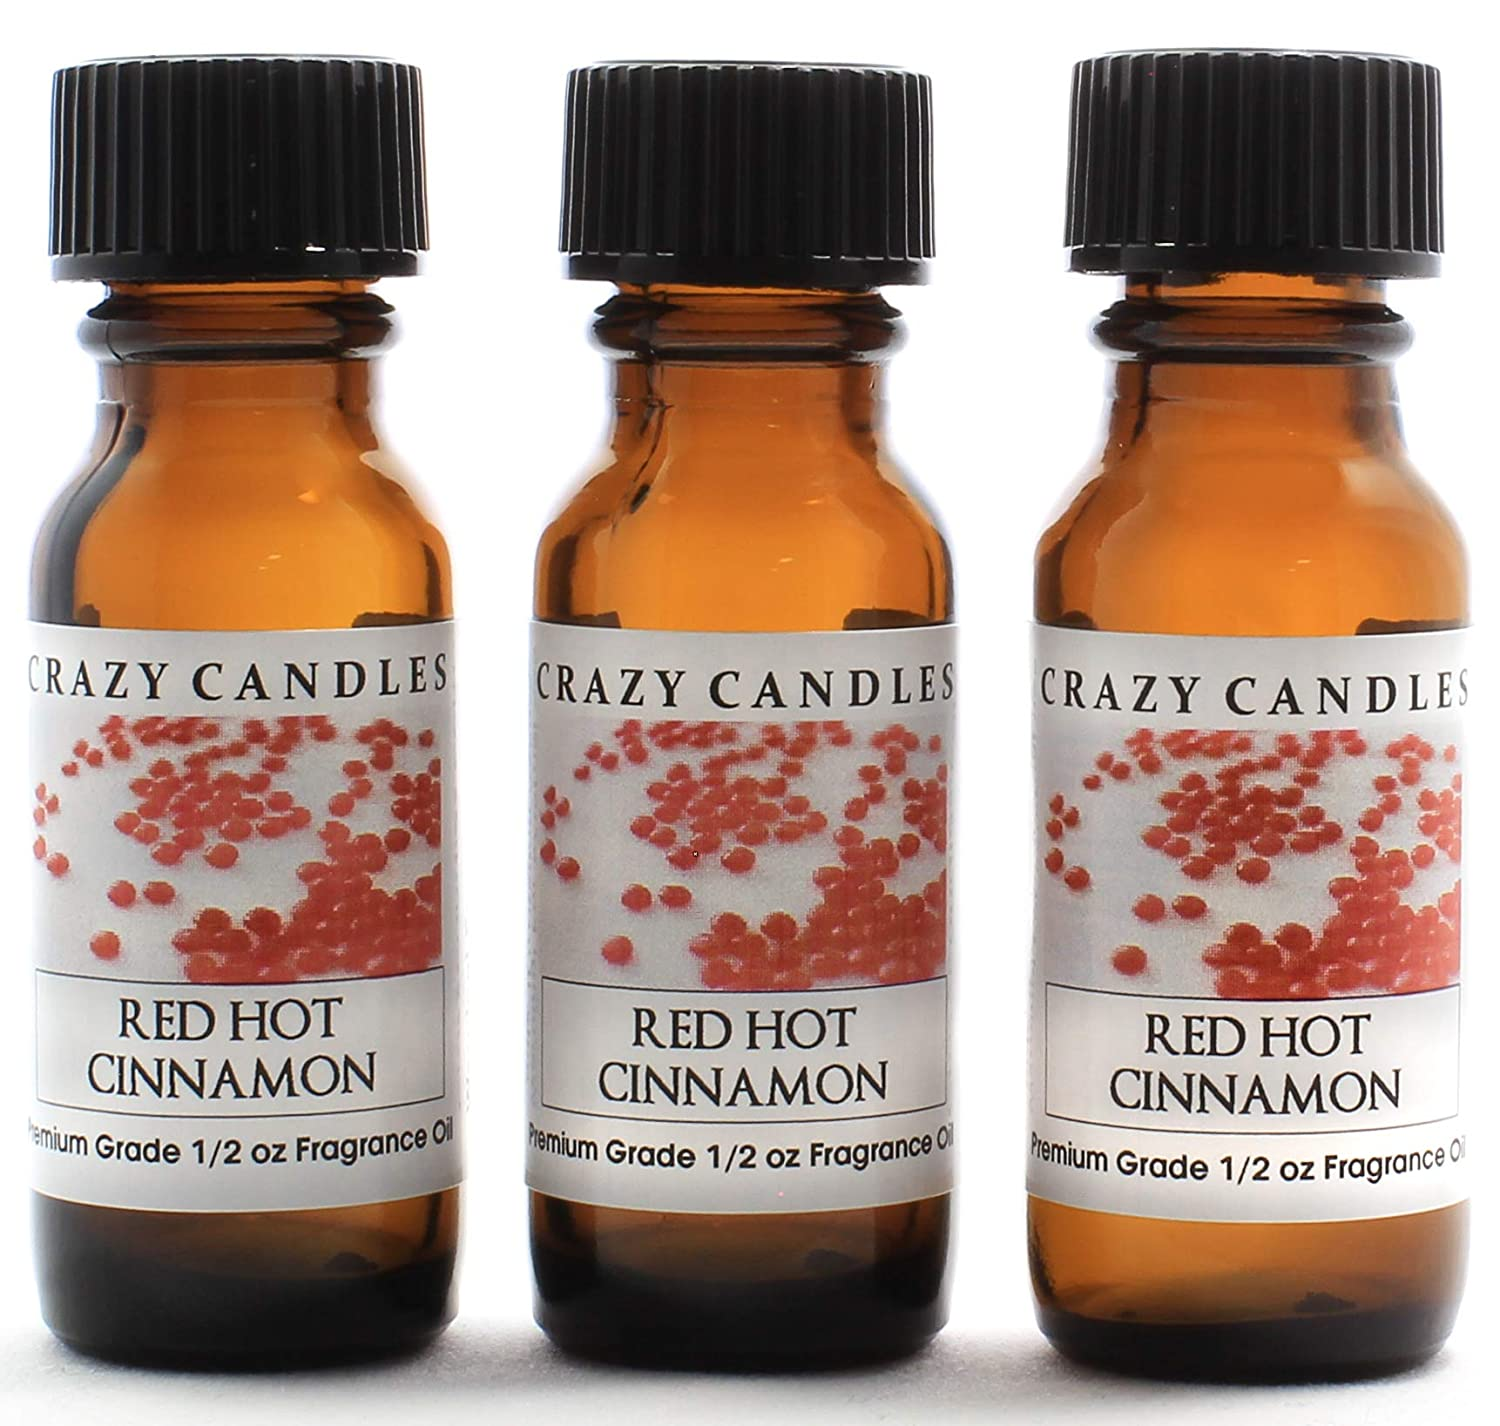 Crazy Candles Red Hot Cinnamon (Made in USA) 3 Bottles 1/2 FL Oz Each (15ml) Premium Grade Scented Fragrance Oil